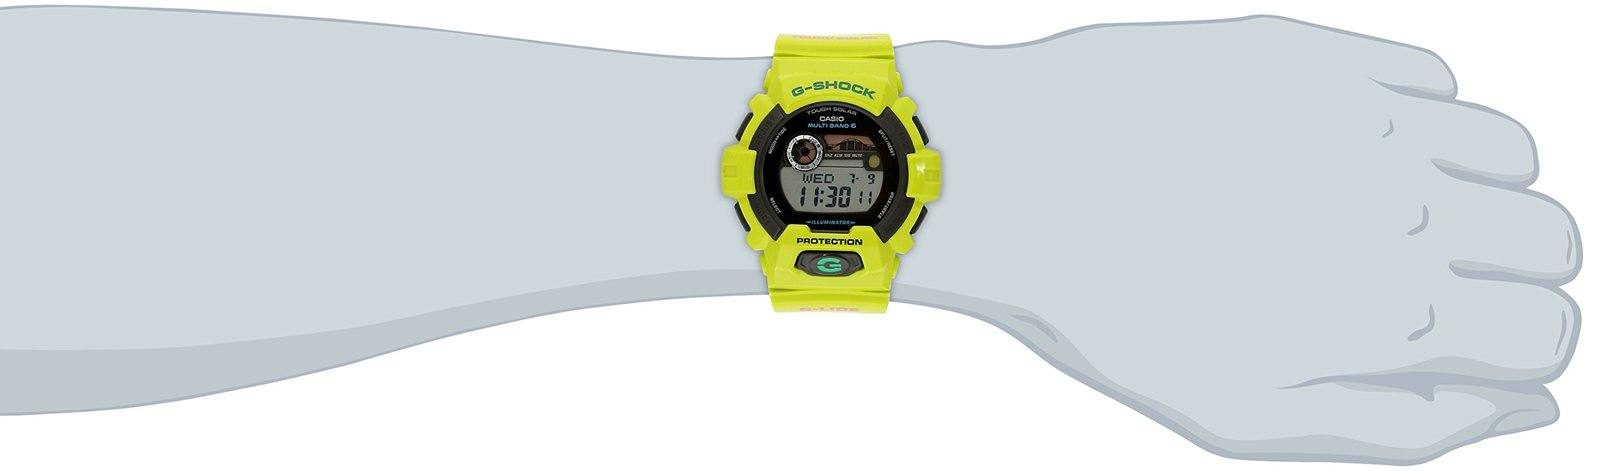 G-Shock GWX8900 Glide with Tide Graph Classic Series Watch - Neon Green/Black...